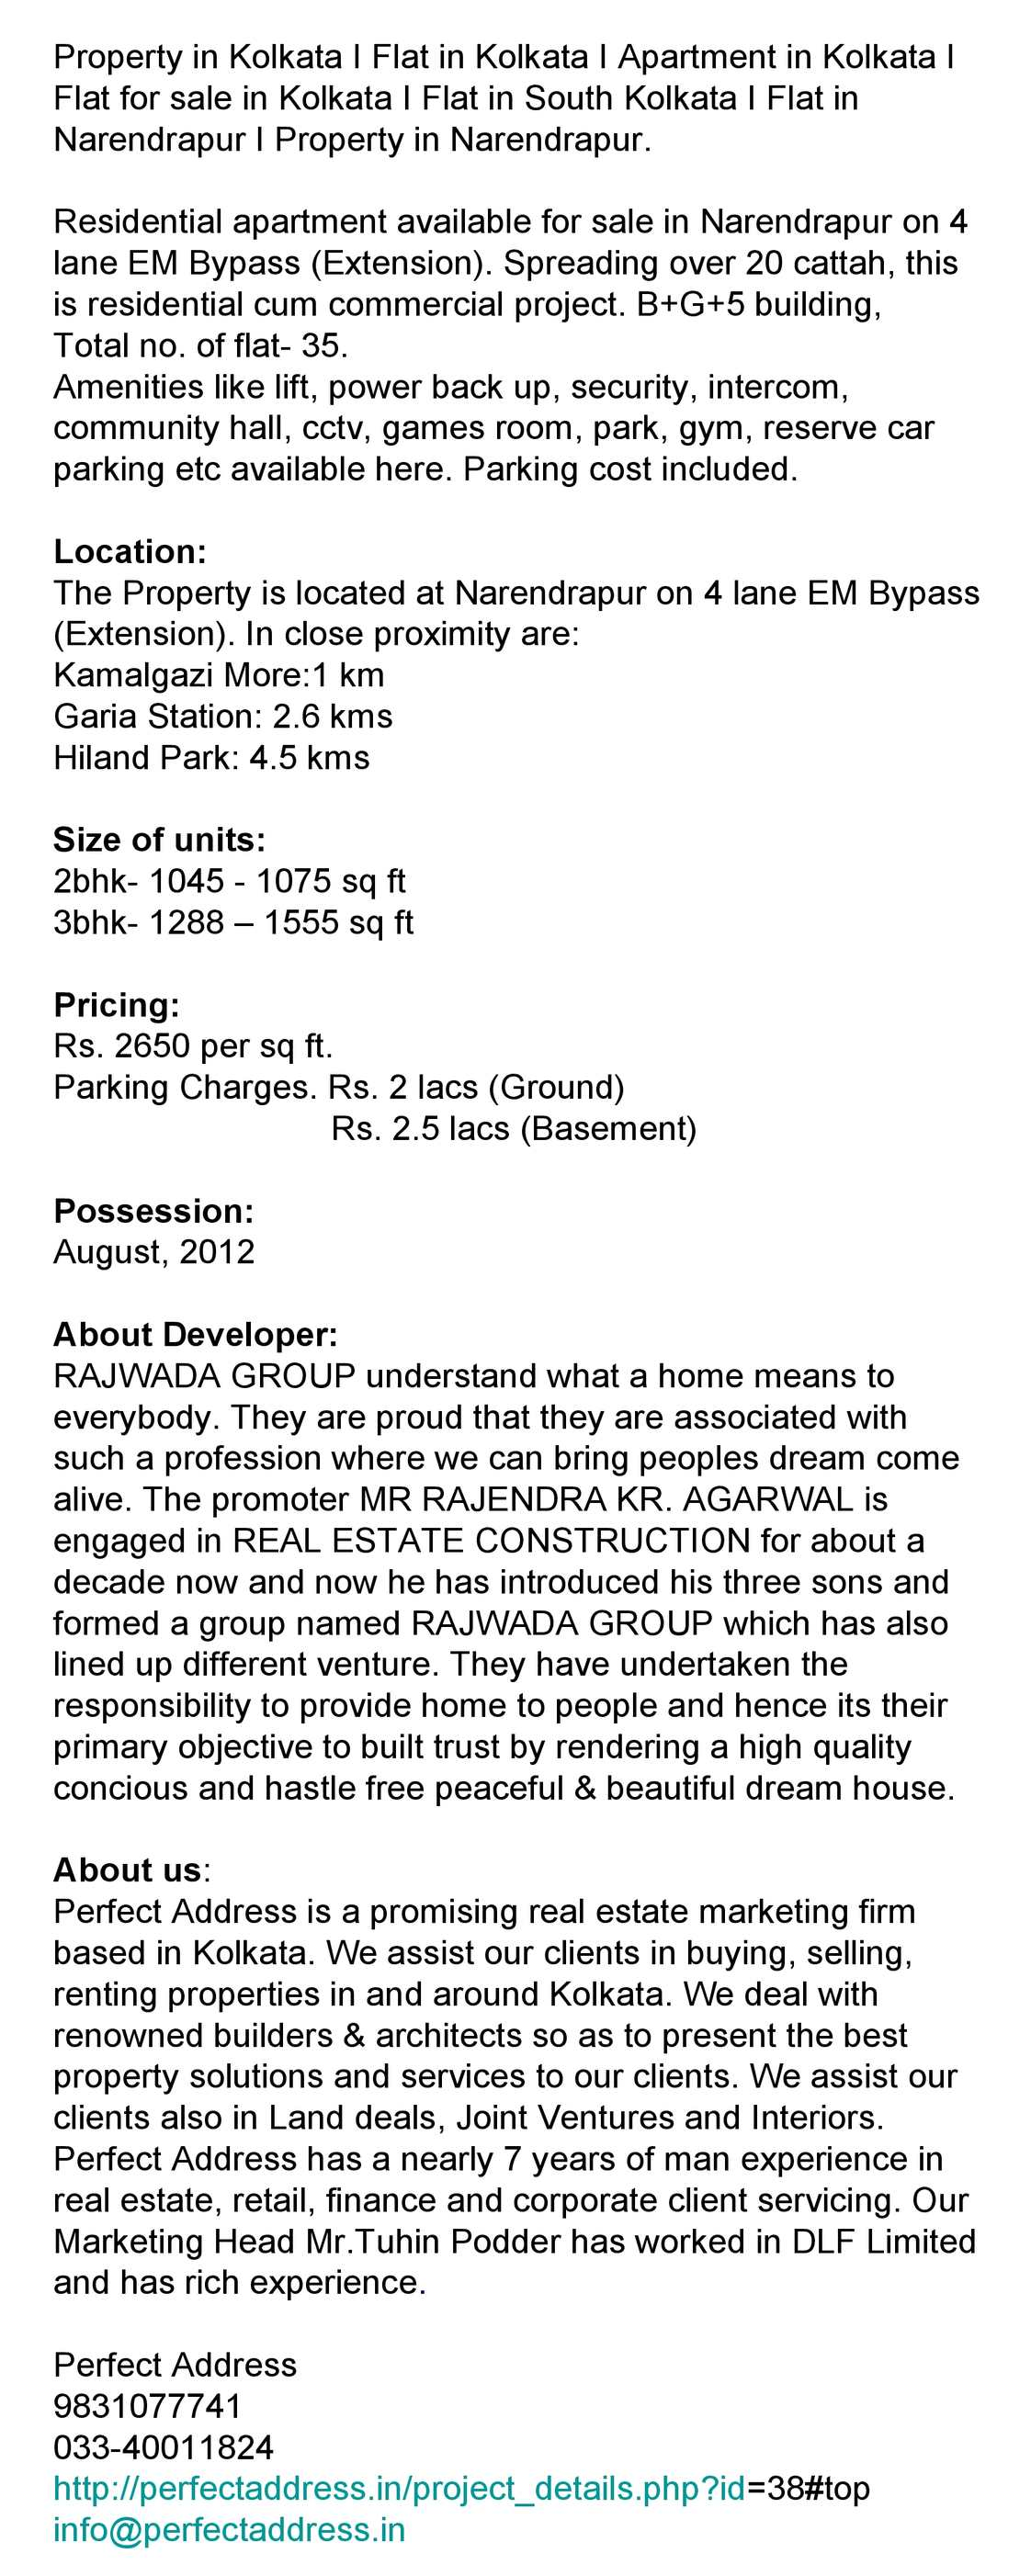 Calaméo - Residential Project on EM Bypass Extension at Narendrapur